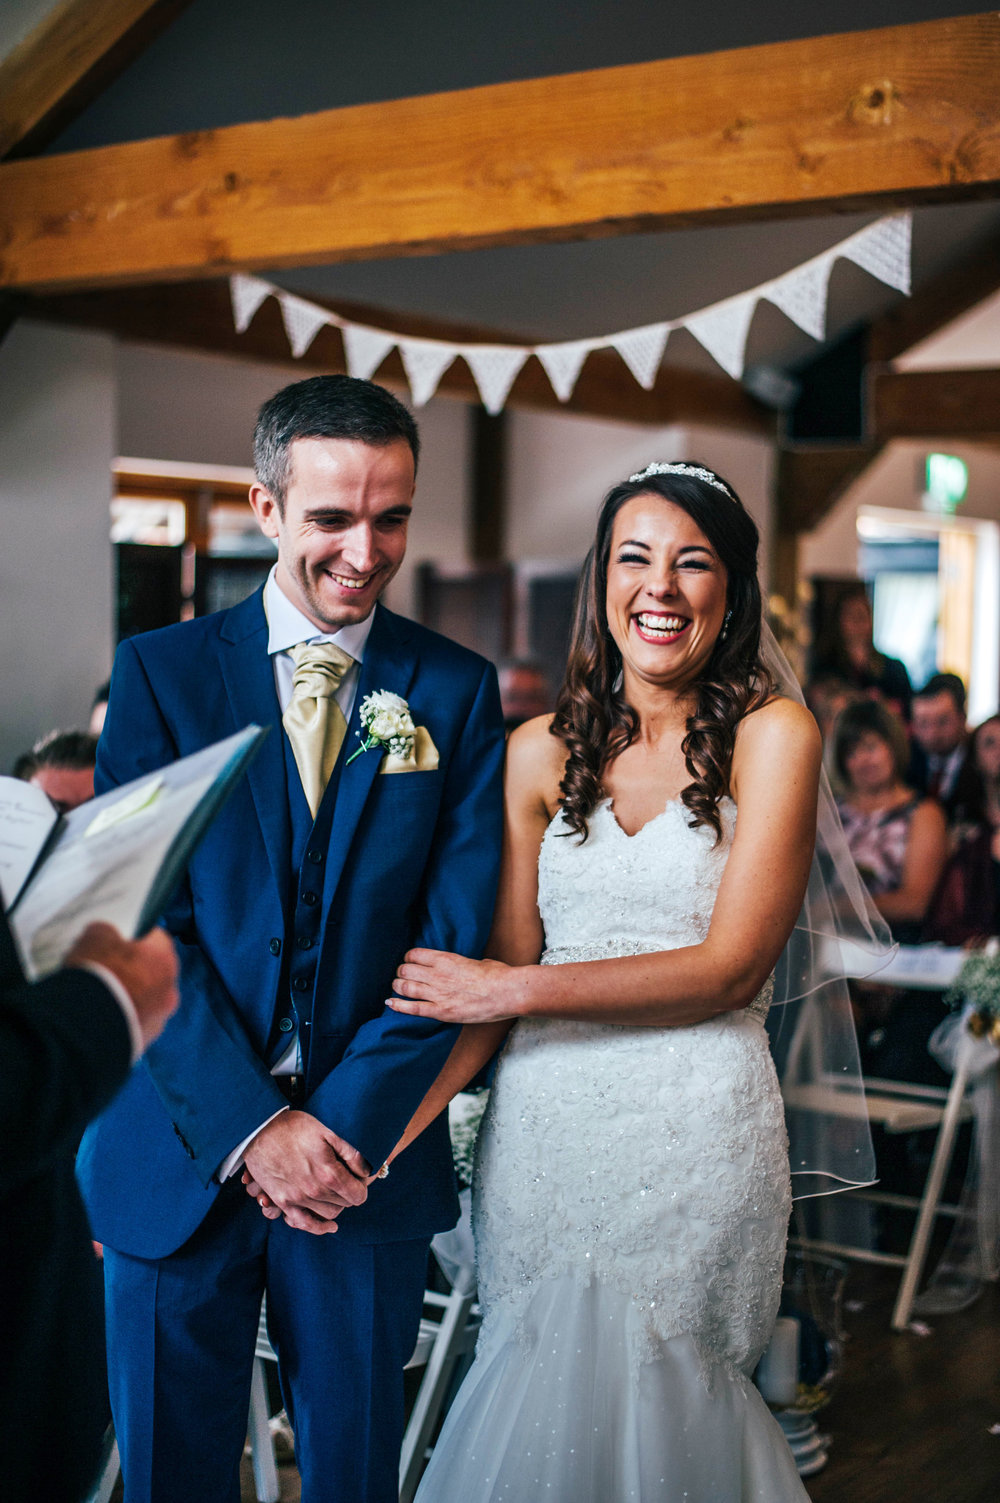 Laughing Bride and Groom in ceremony at Maidens Barn Essex UK Documentary Wedding Photographer